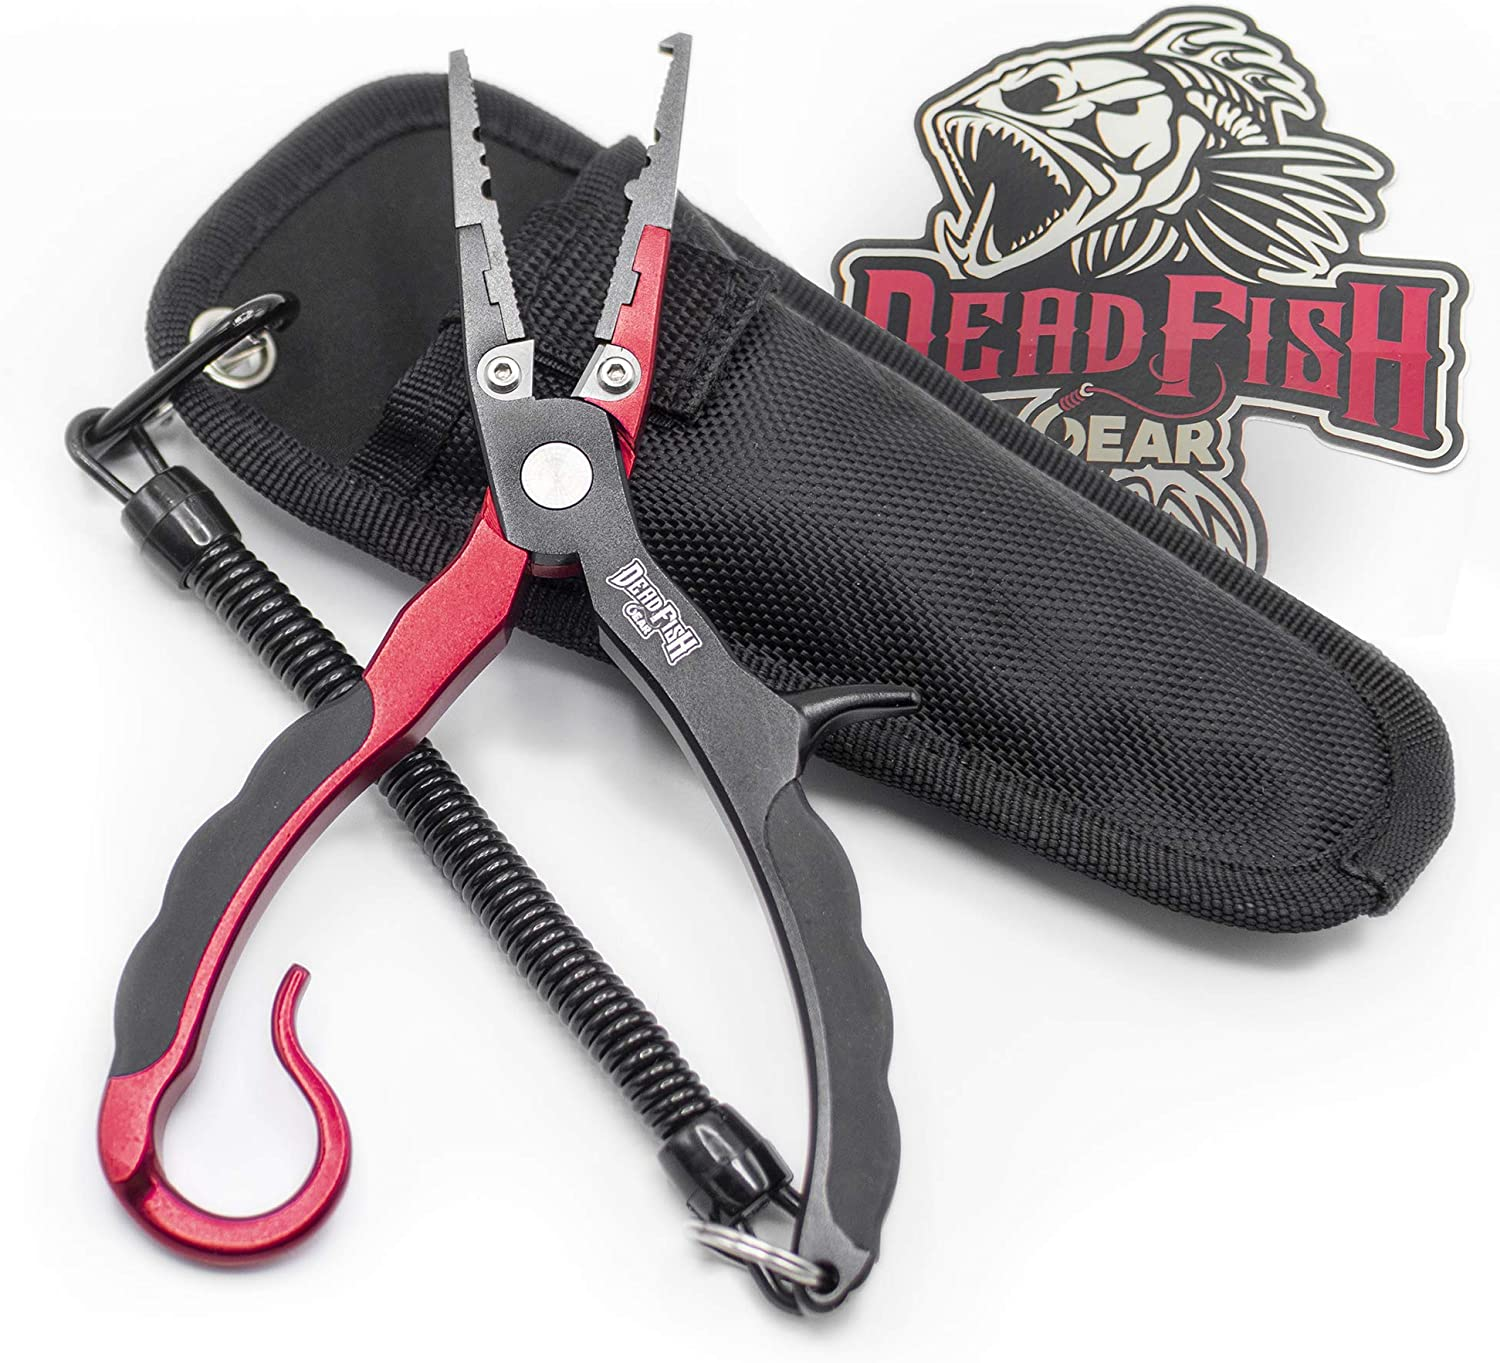 Zitrades Aluminum Fishing Pliers Hook Remover Braid Line Cutting and Split Ring with Coiled Lanyard and Sheath